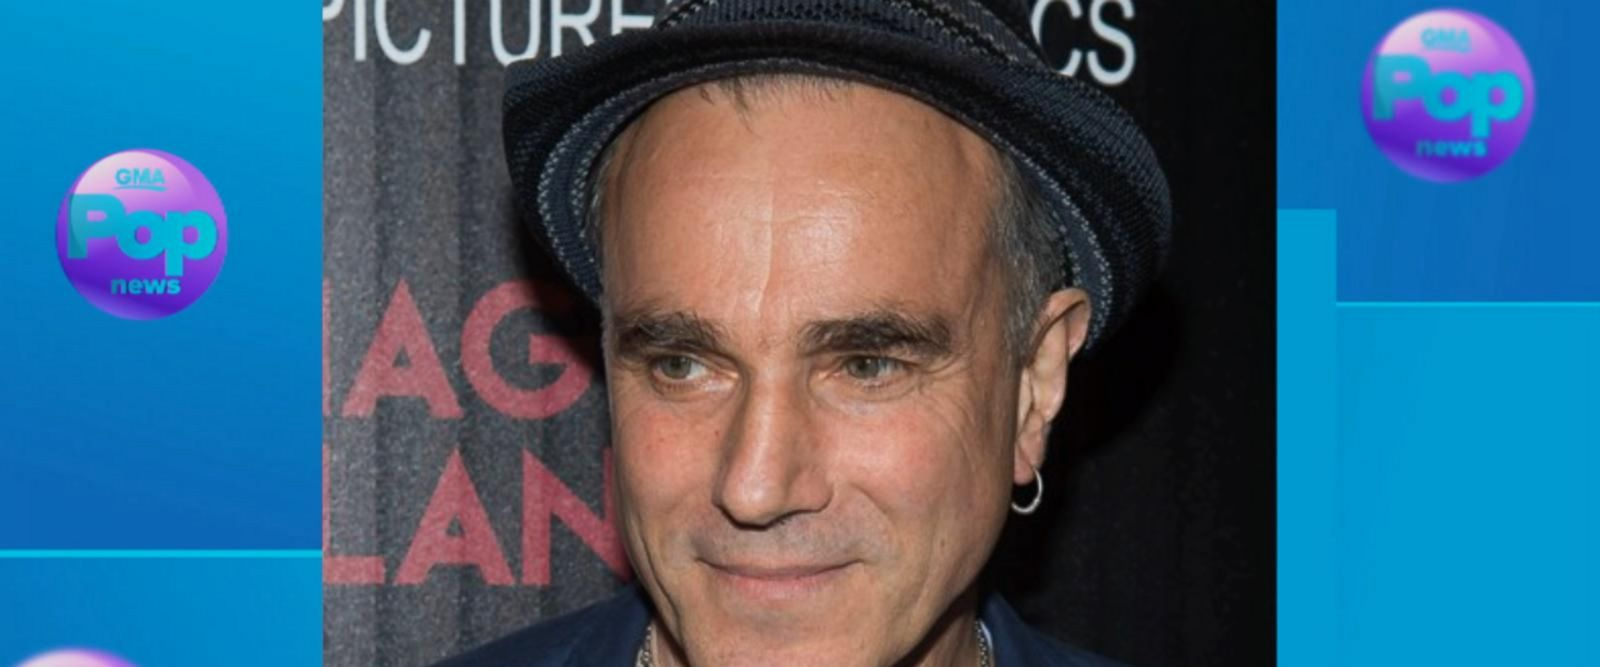 VIDEO: Daniel Day-Lewis makes career move from actor to fashion designer